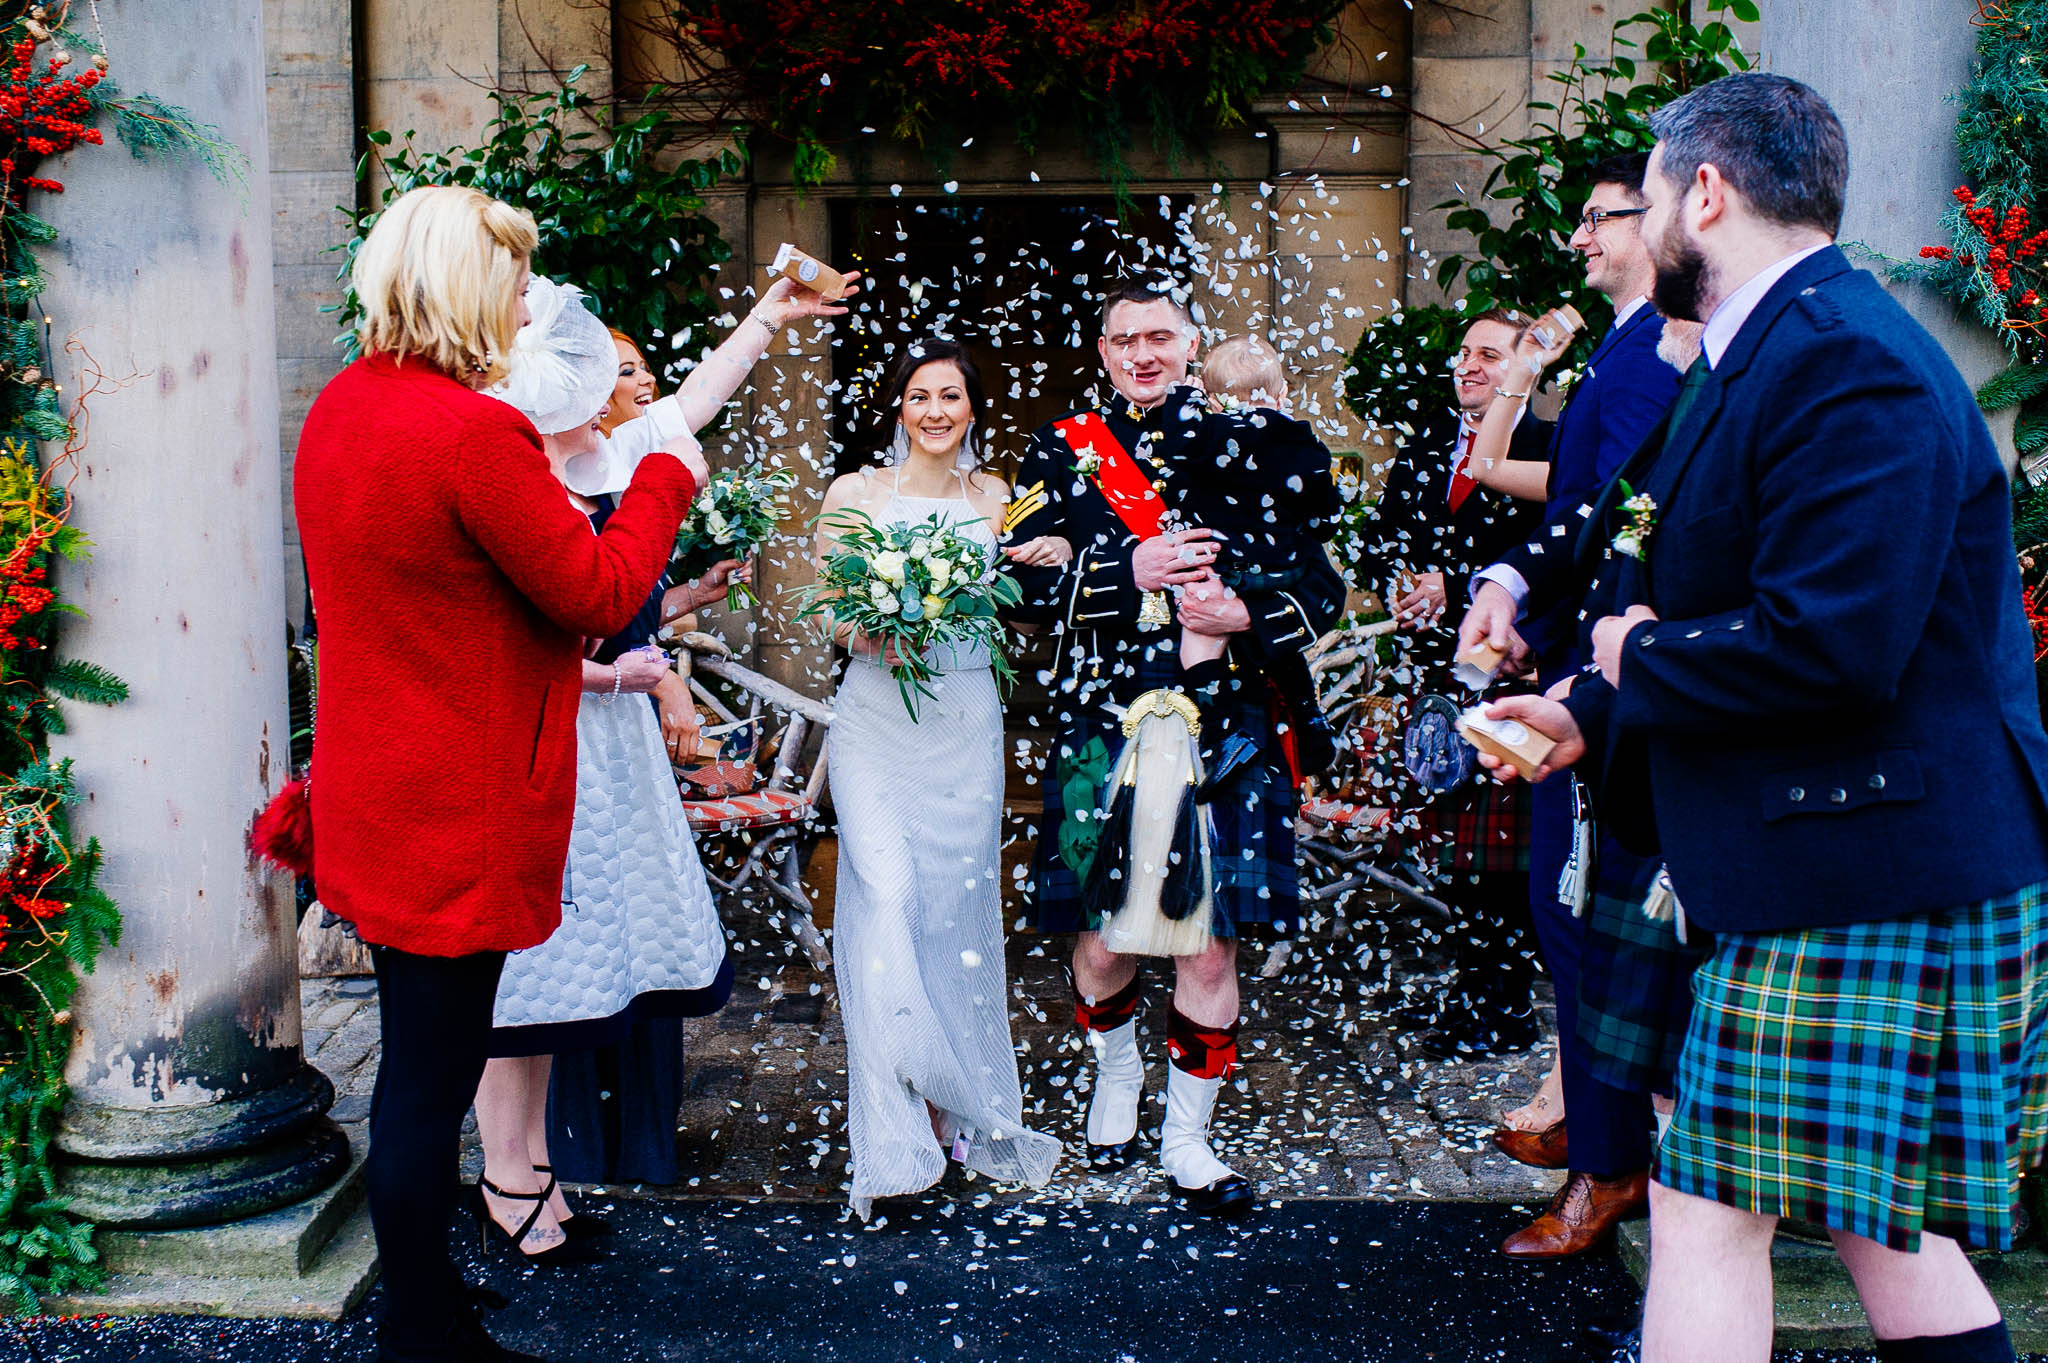 Wedding confetti at Prestonfield House